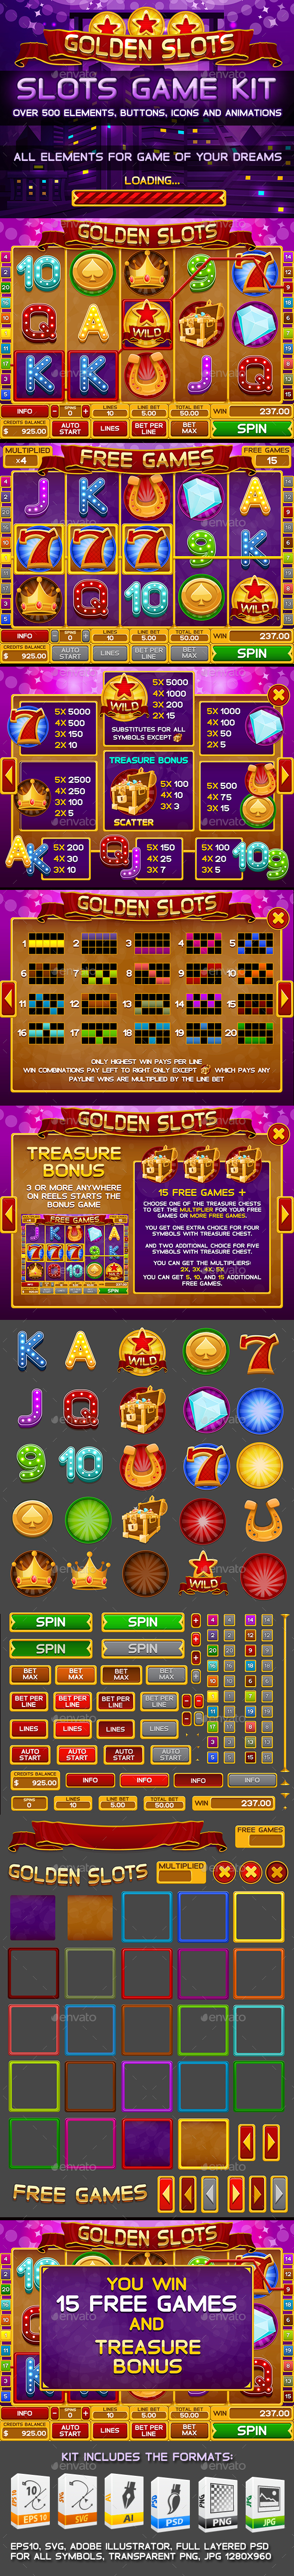 Golden Slots Game Kit - Game Kits Game Assets